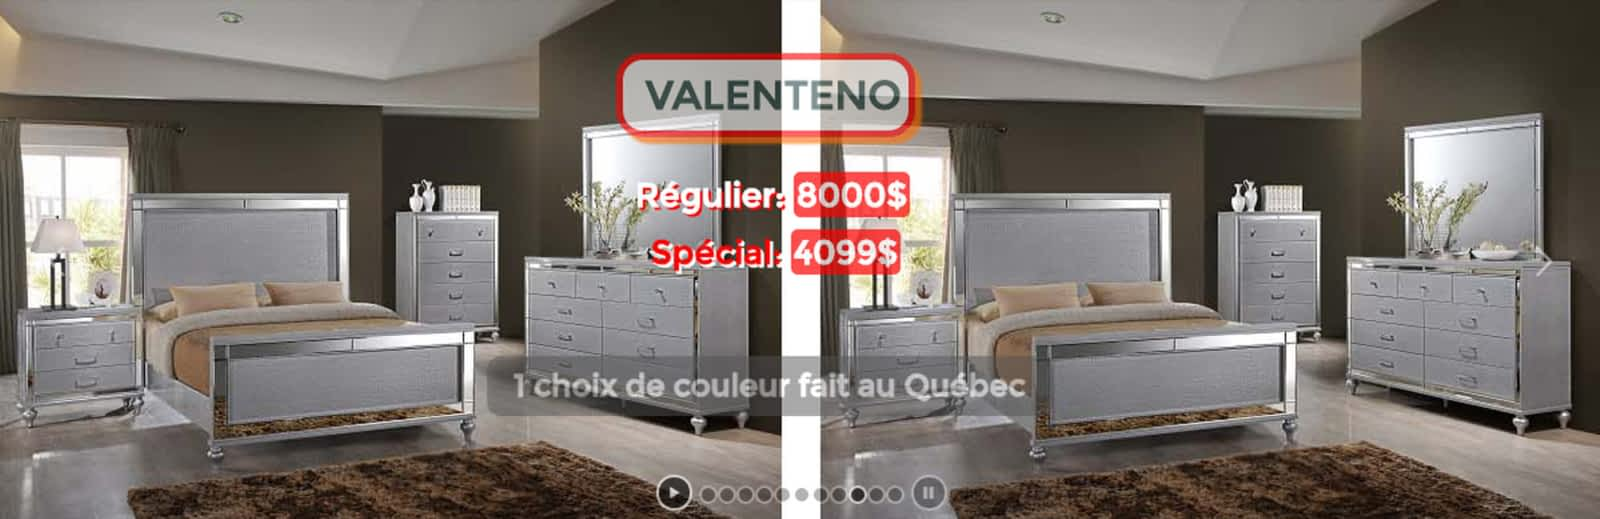 Accent Meuble Financement Meuble Loren Inc Opening Hours 3615 Ch De Chambly